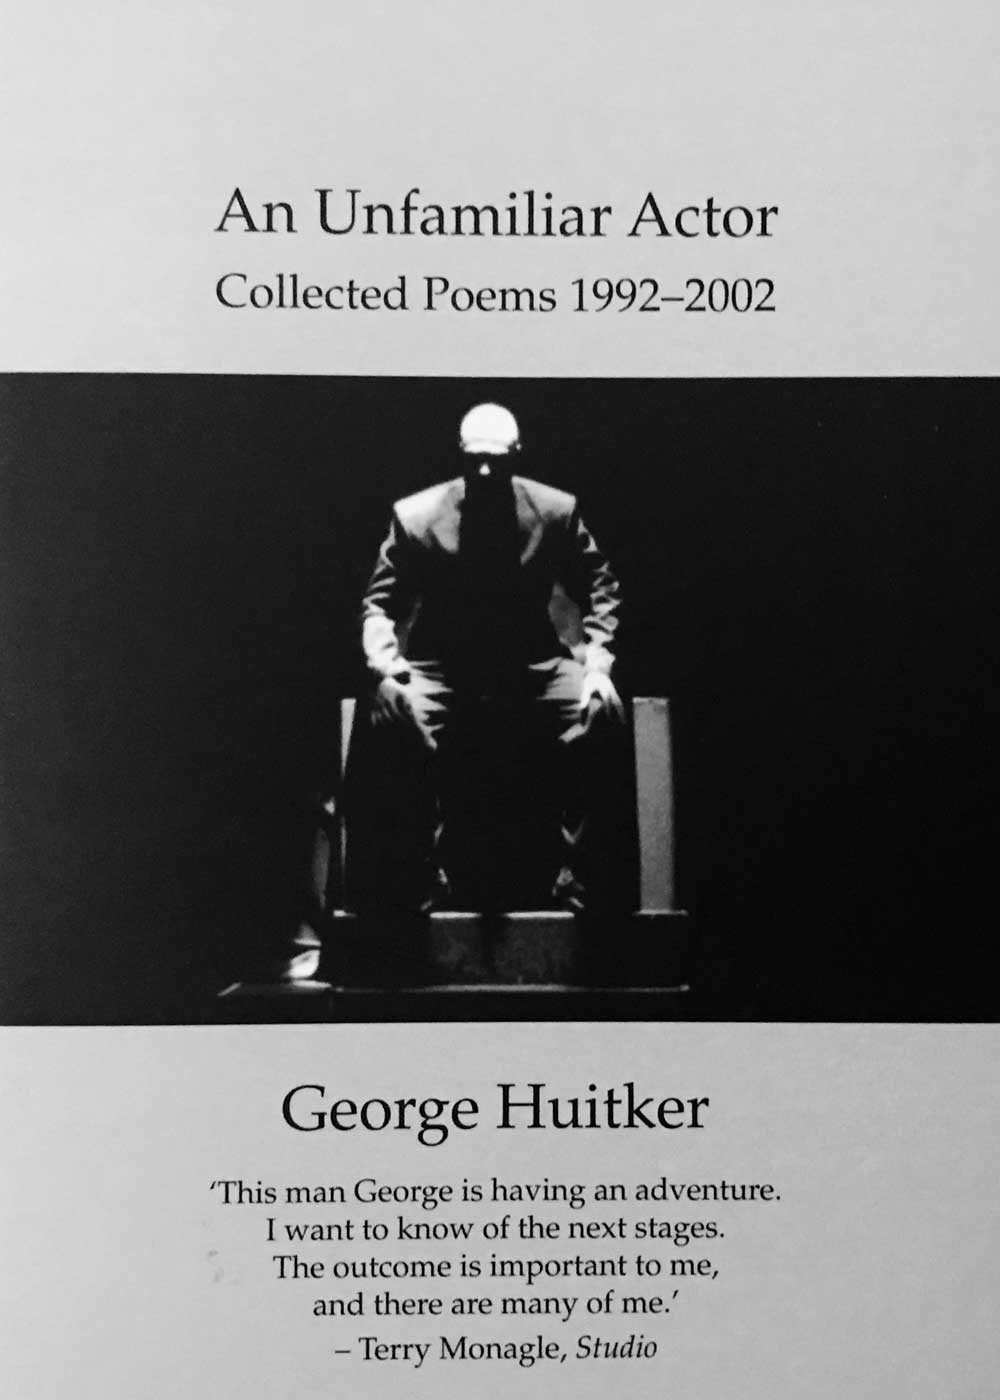 An Unfamiliar Actor book cover.